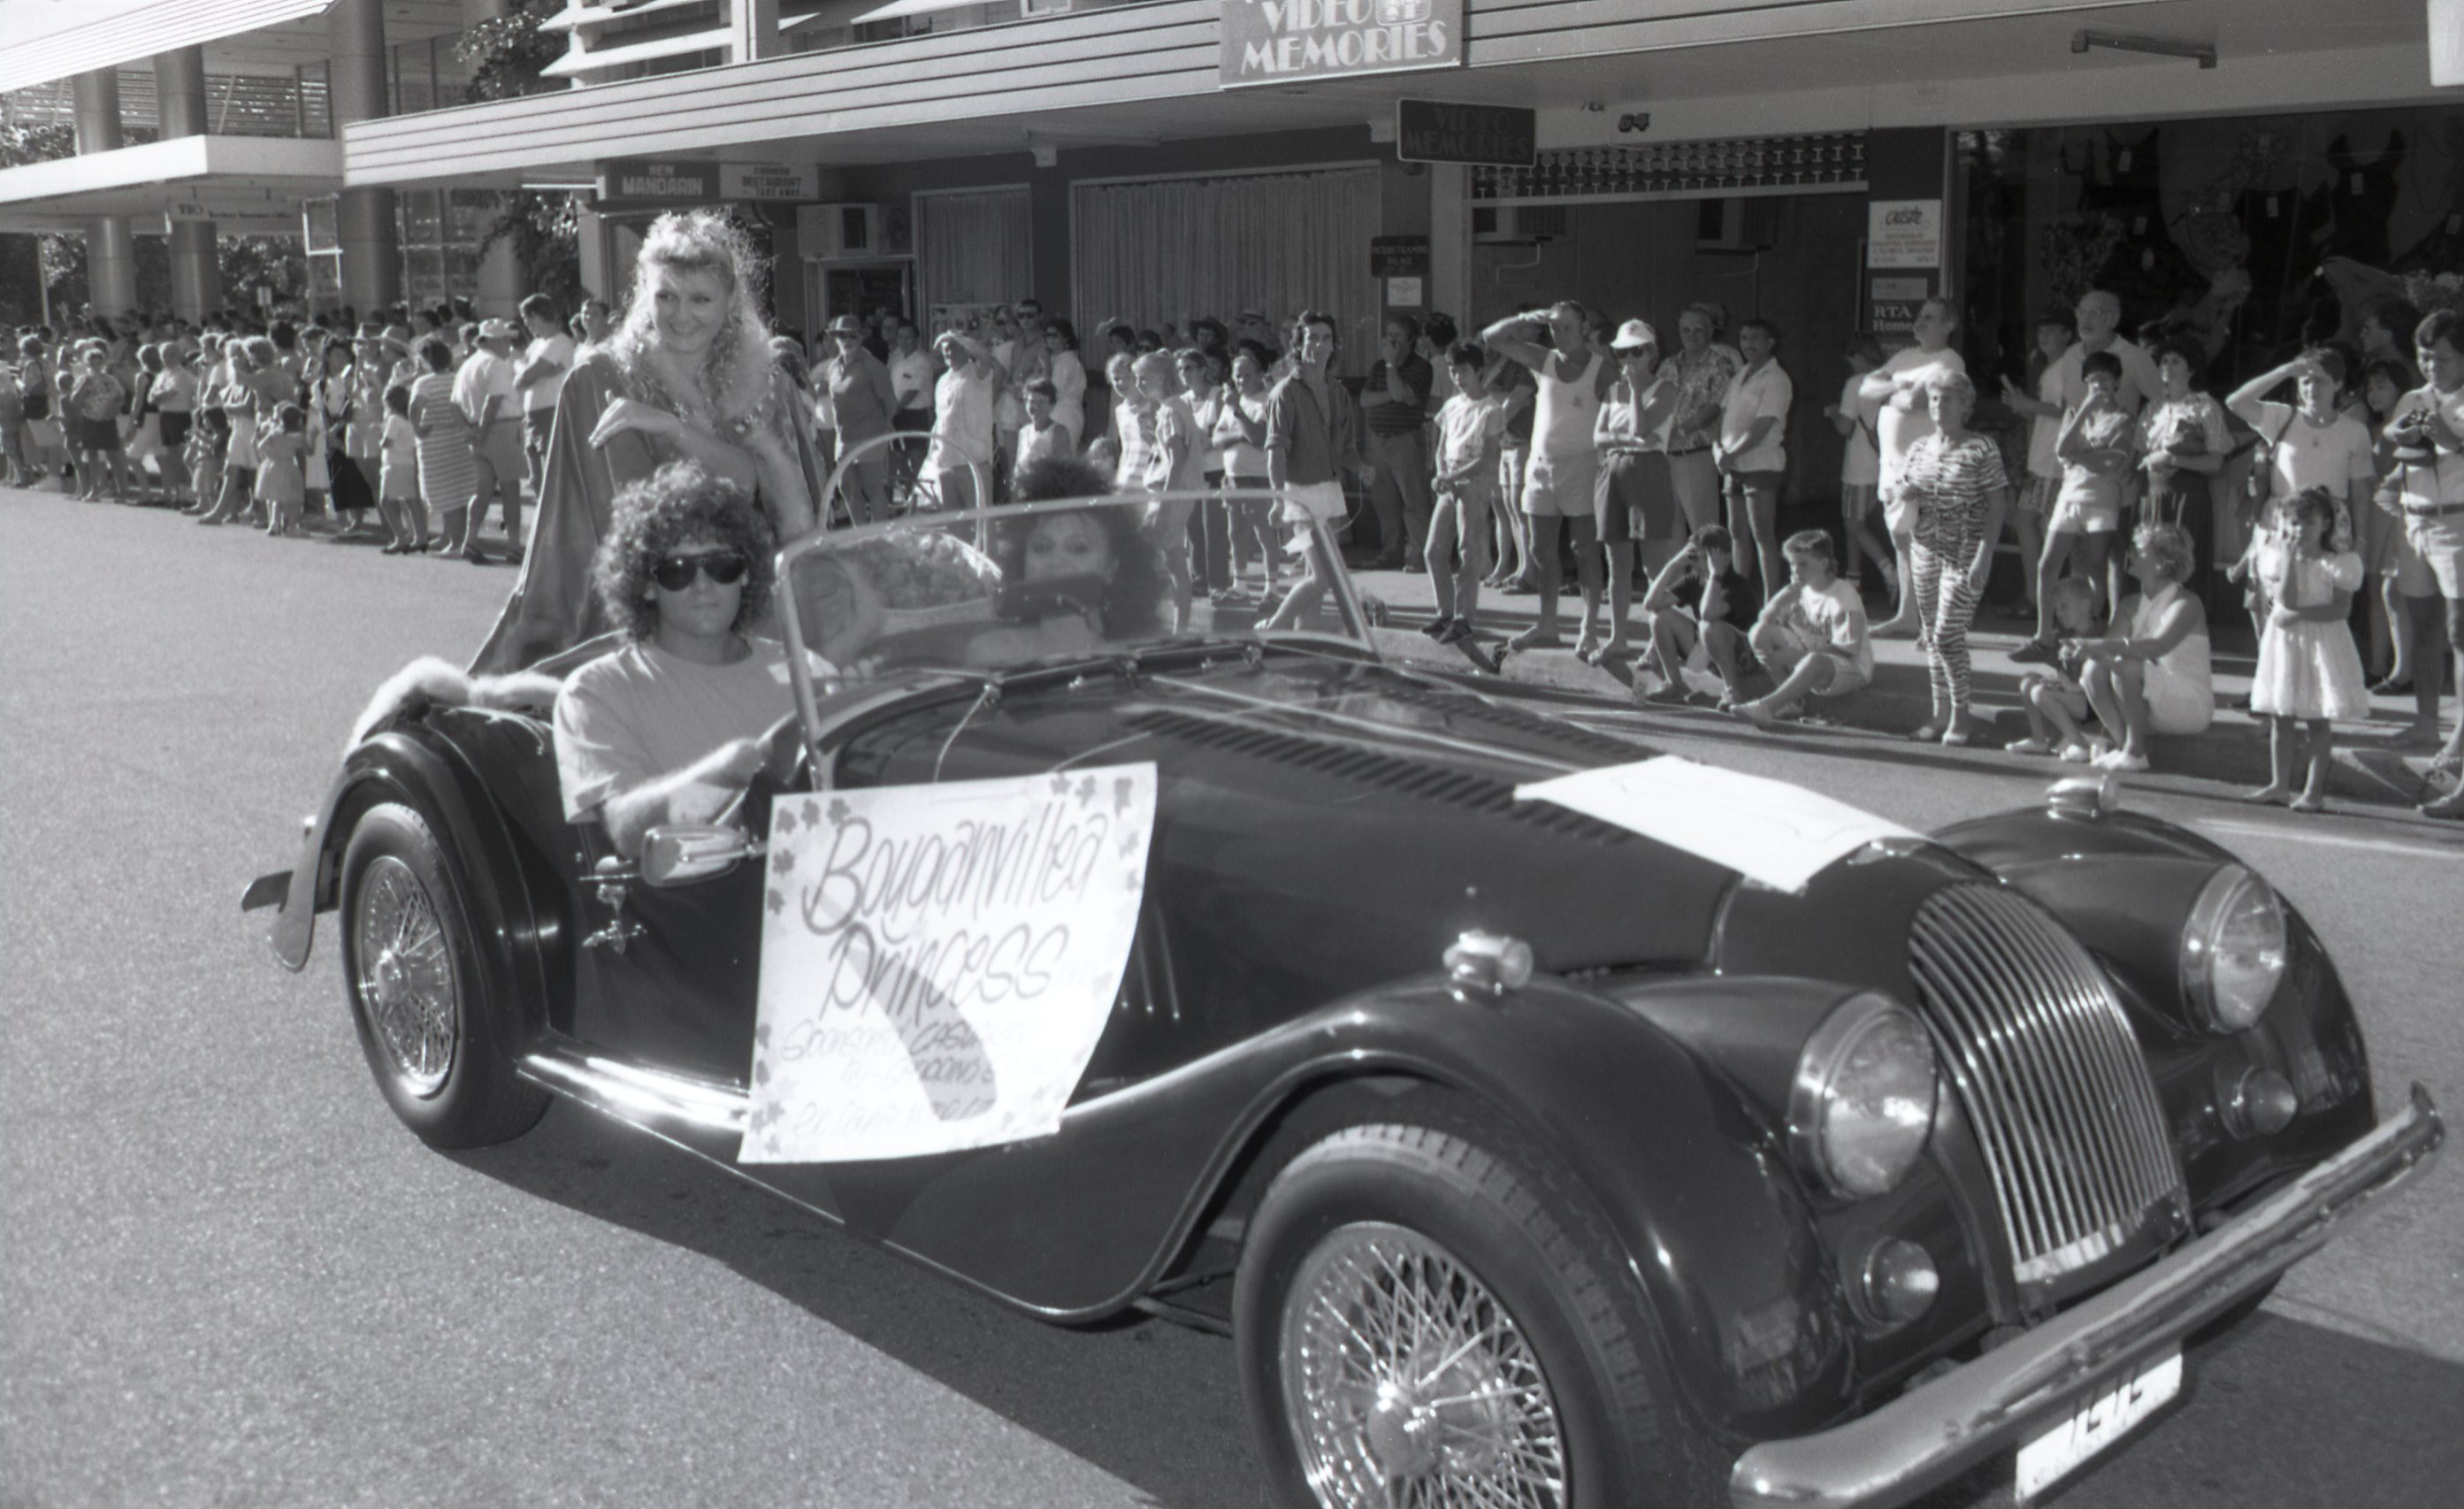 The Bougainvillea Princess at Darwin's Bougainvillea Festival Parade, 3 June 1989<br />Image courtesy of Library & Archives NT,  Department of the Chief Minister, NTRS 3823 P1, Box 11, BW2835, Image 10